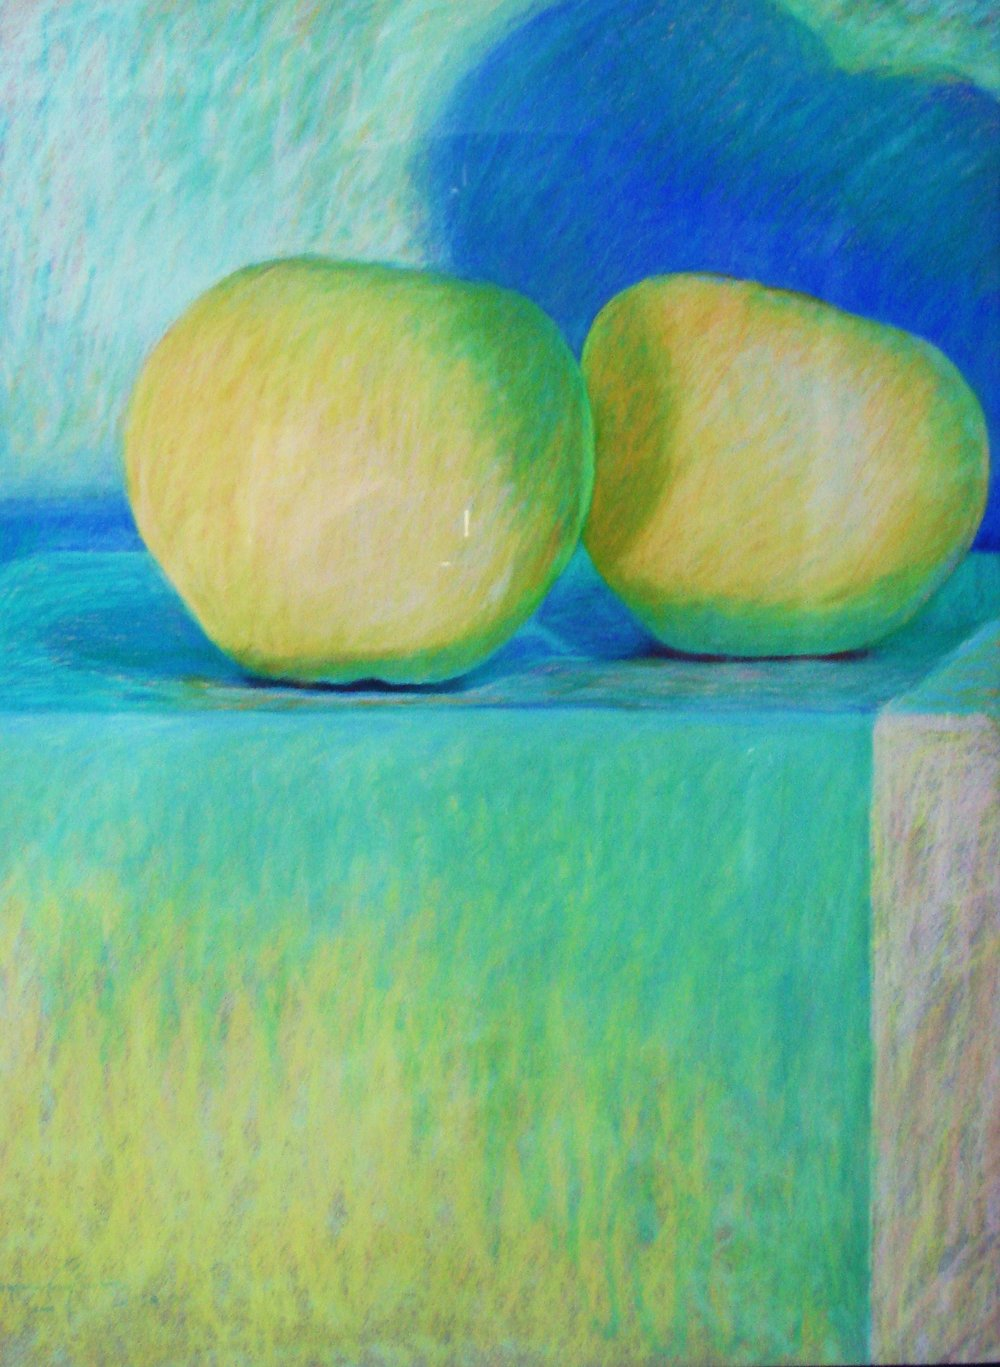 Granny Smith Big - Cuddling pastel37x37.JPG